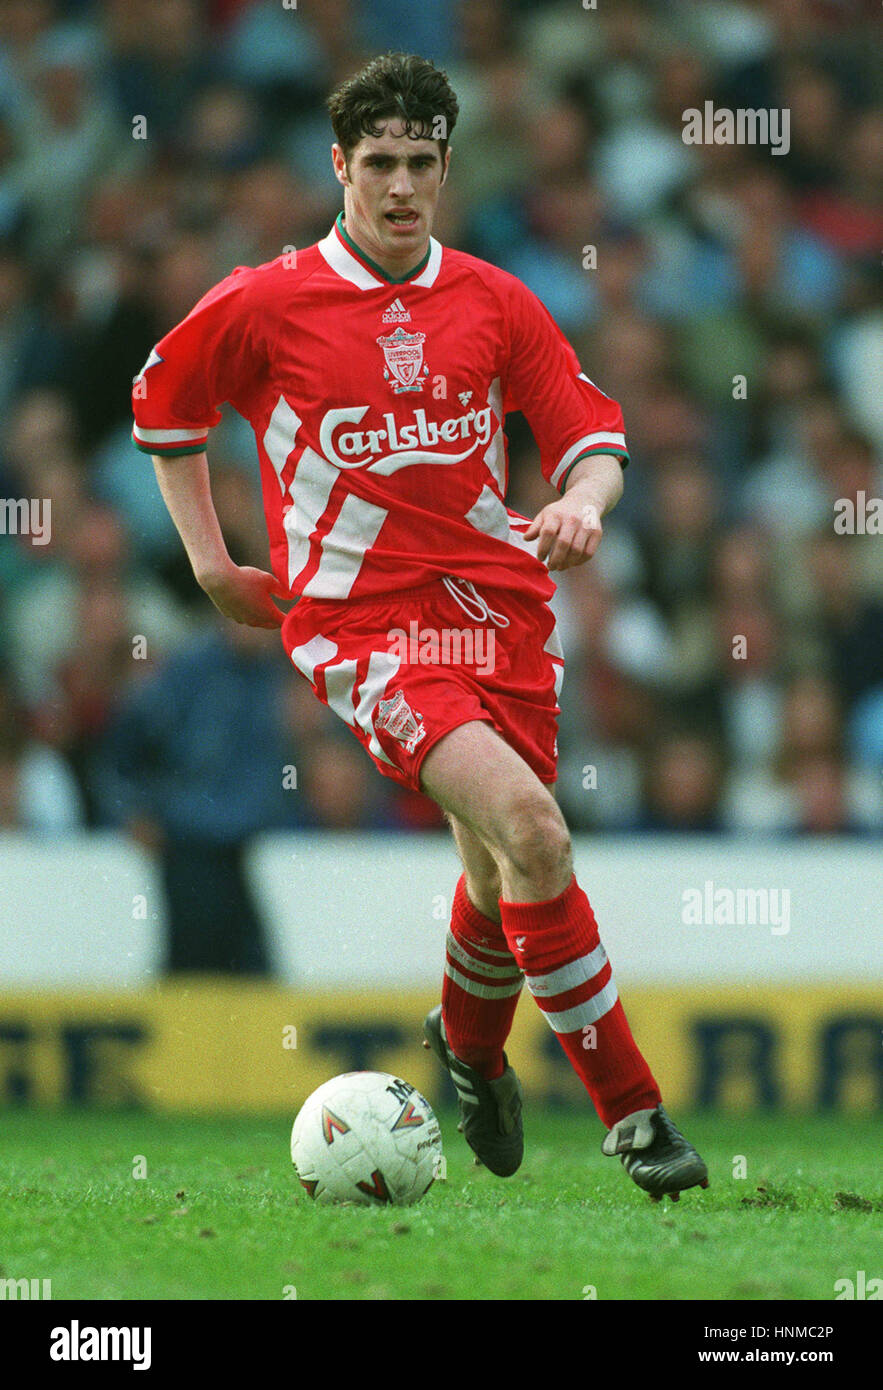 MARK KENNEDY LIVERPOOL 18 April 1995 - Stock Image